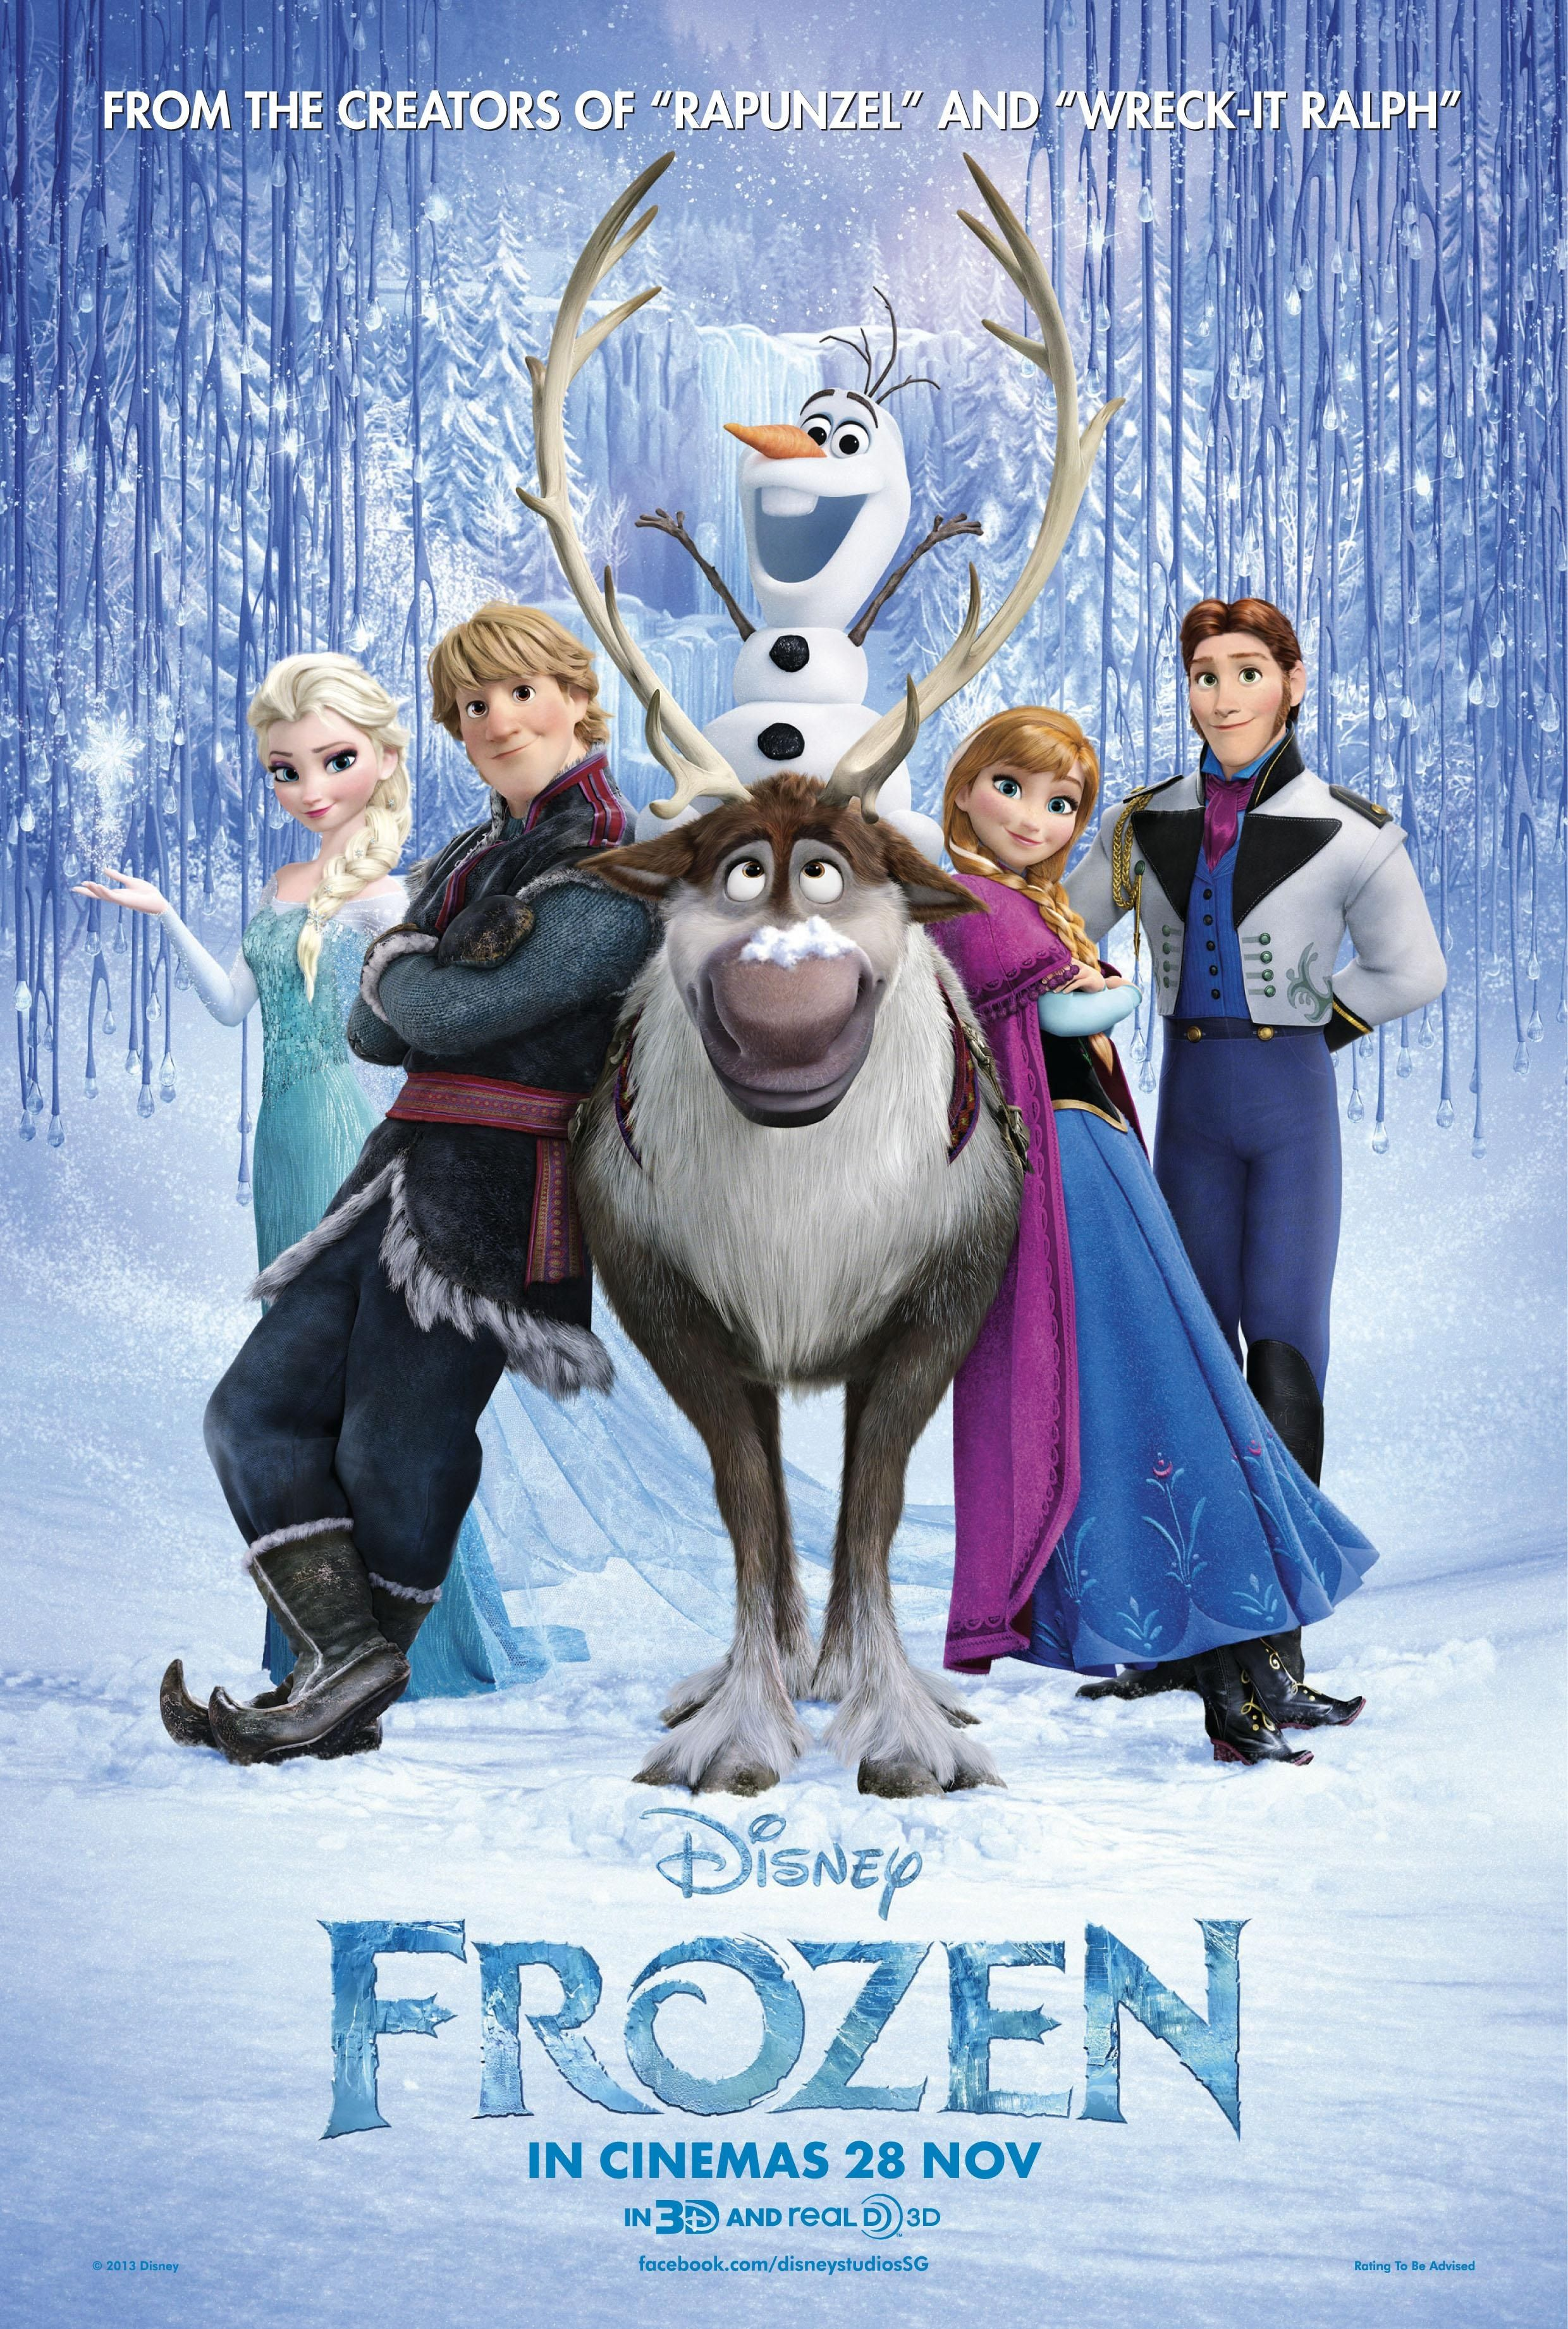 Frozen Just Loved This New Disney Movie I Had Let It Go In My